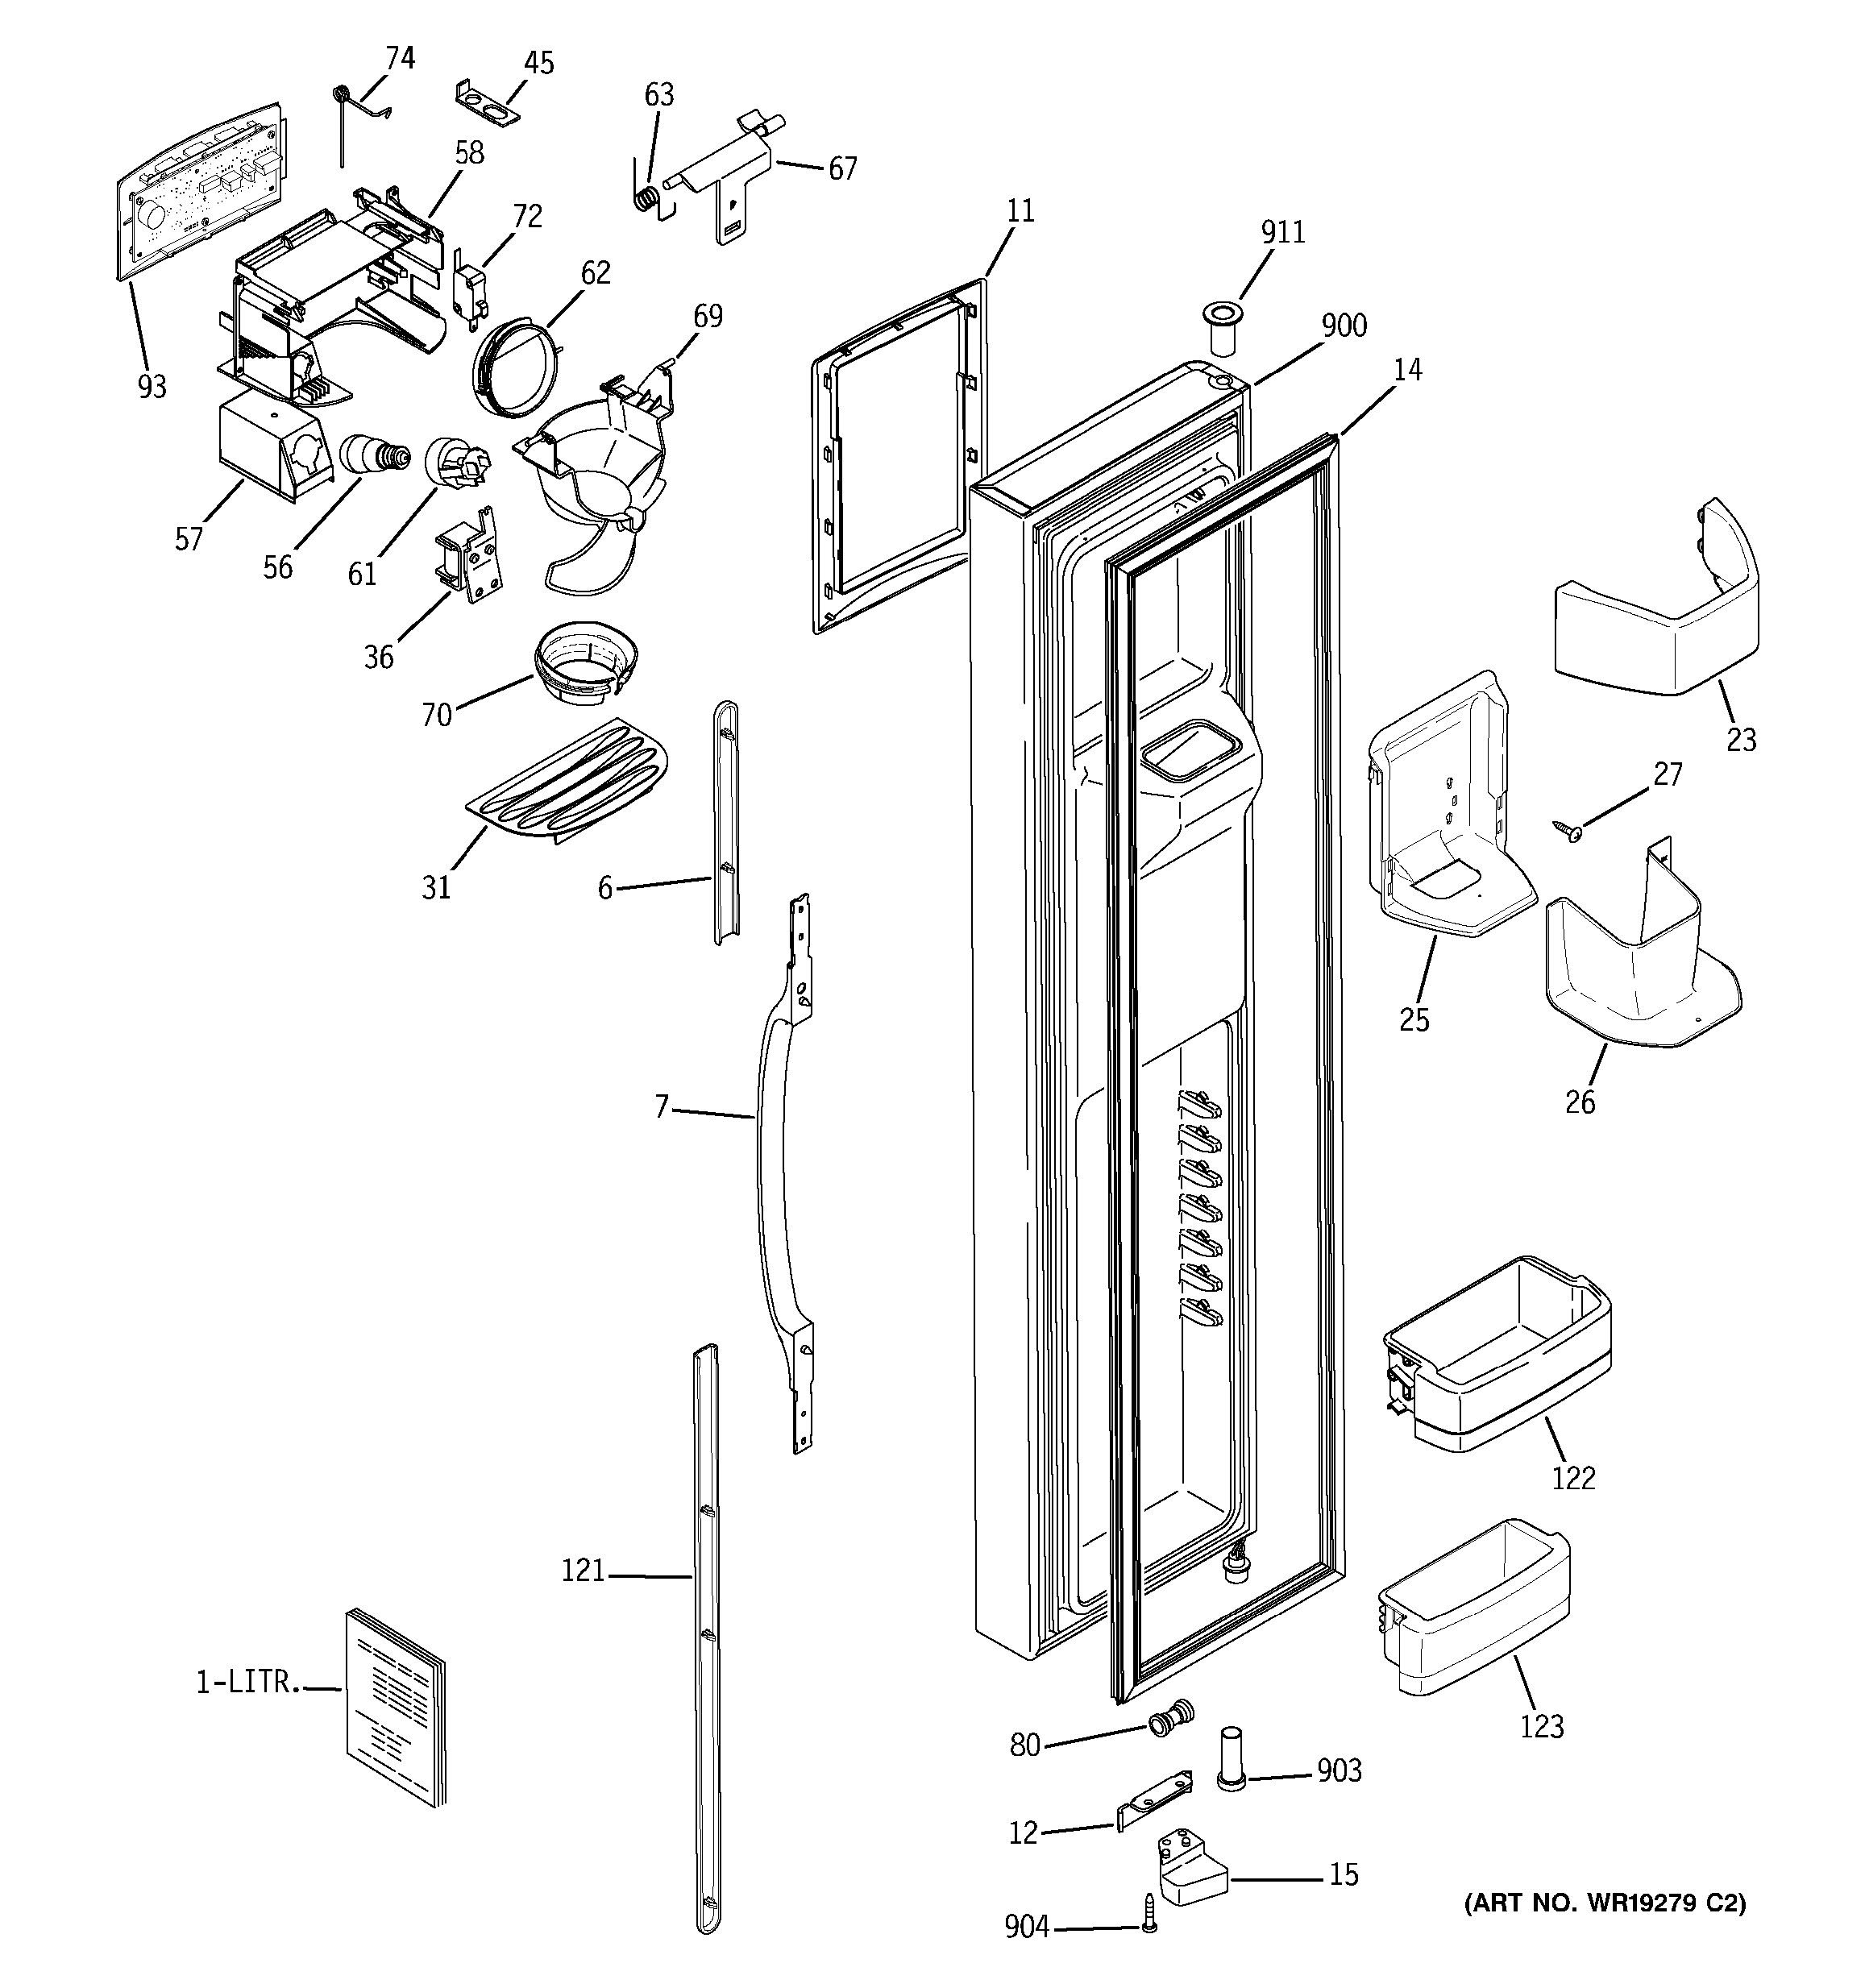 Assembly View For Freezer Door Gss25tgpaww